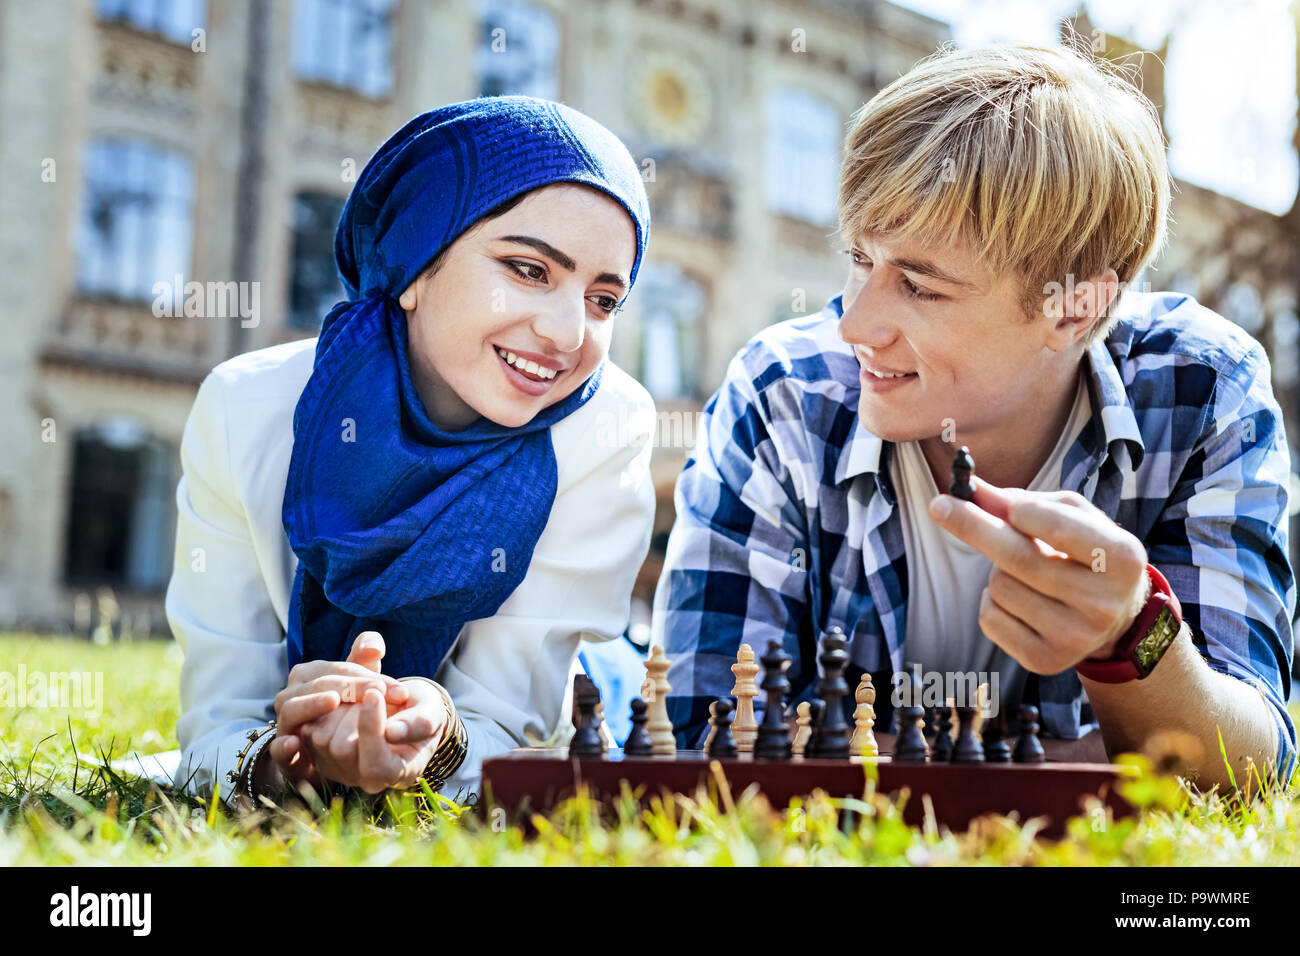 Beaming young people enjoying chess game outdoors - Stock Image